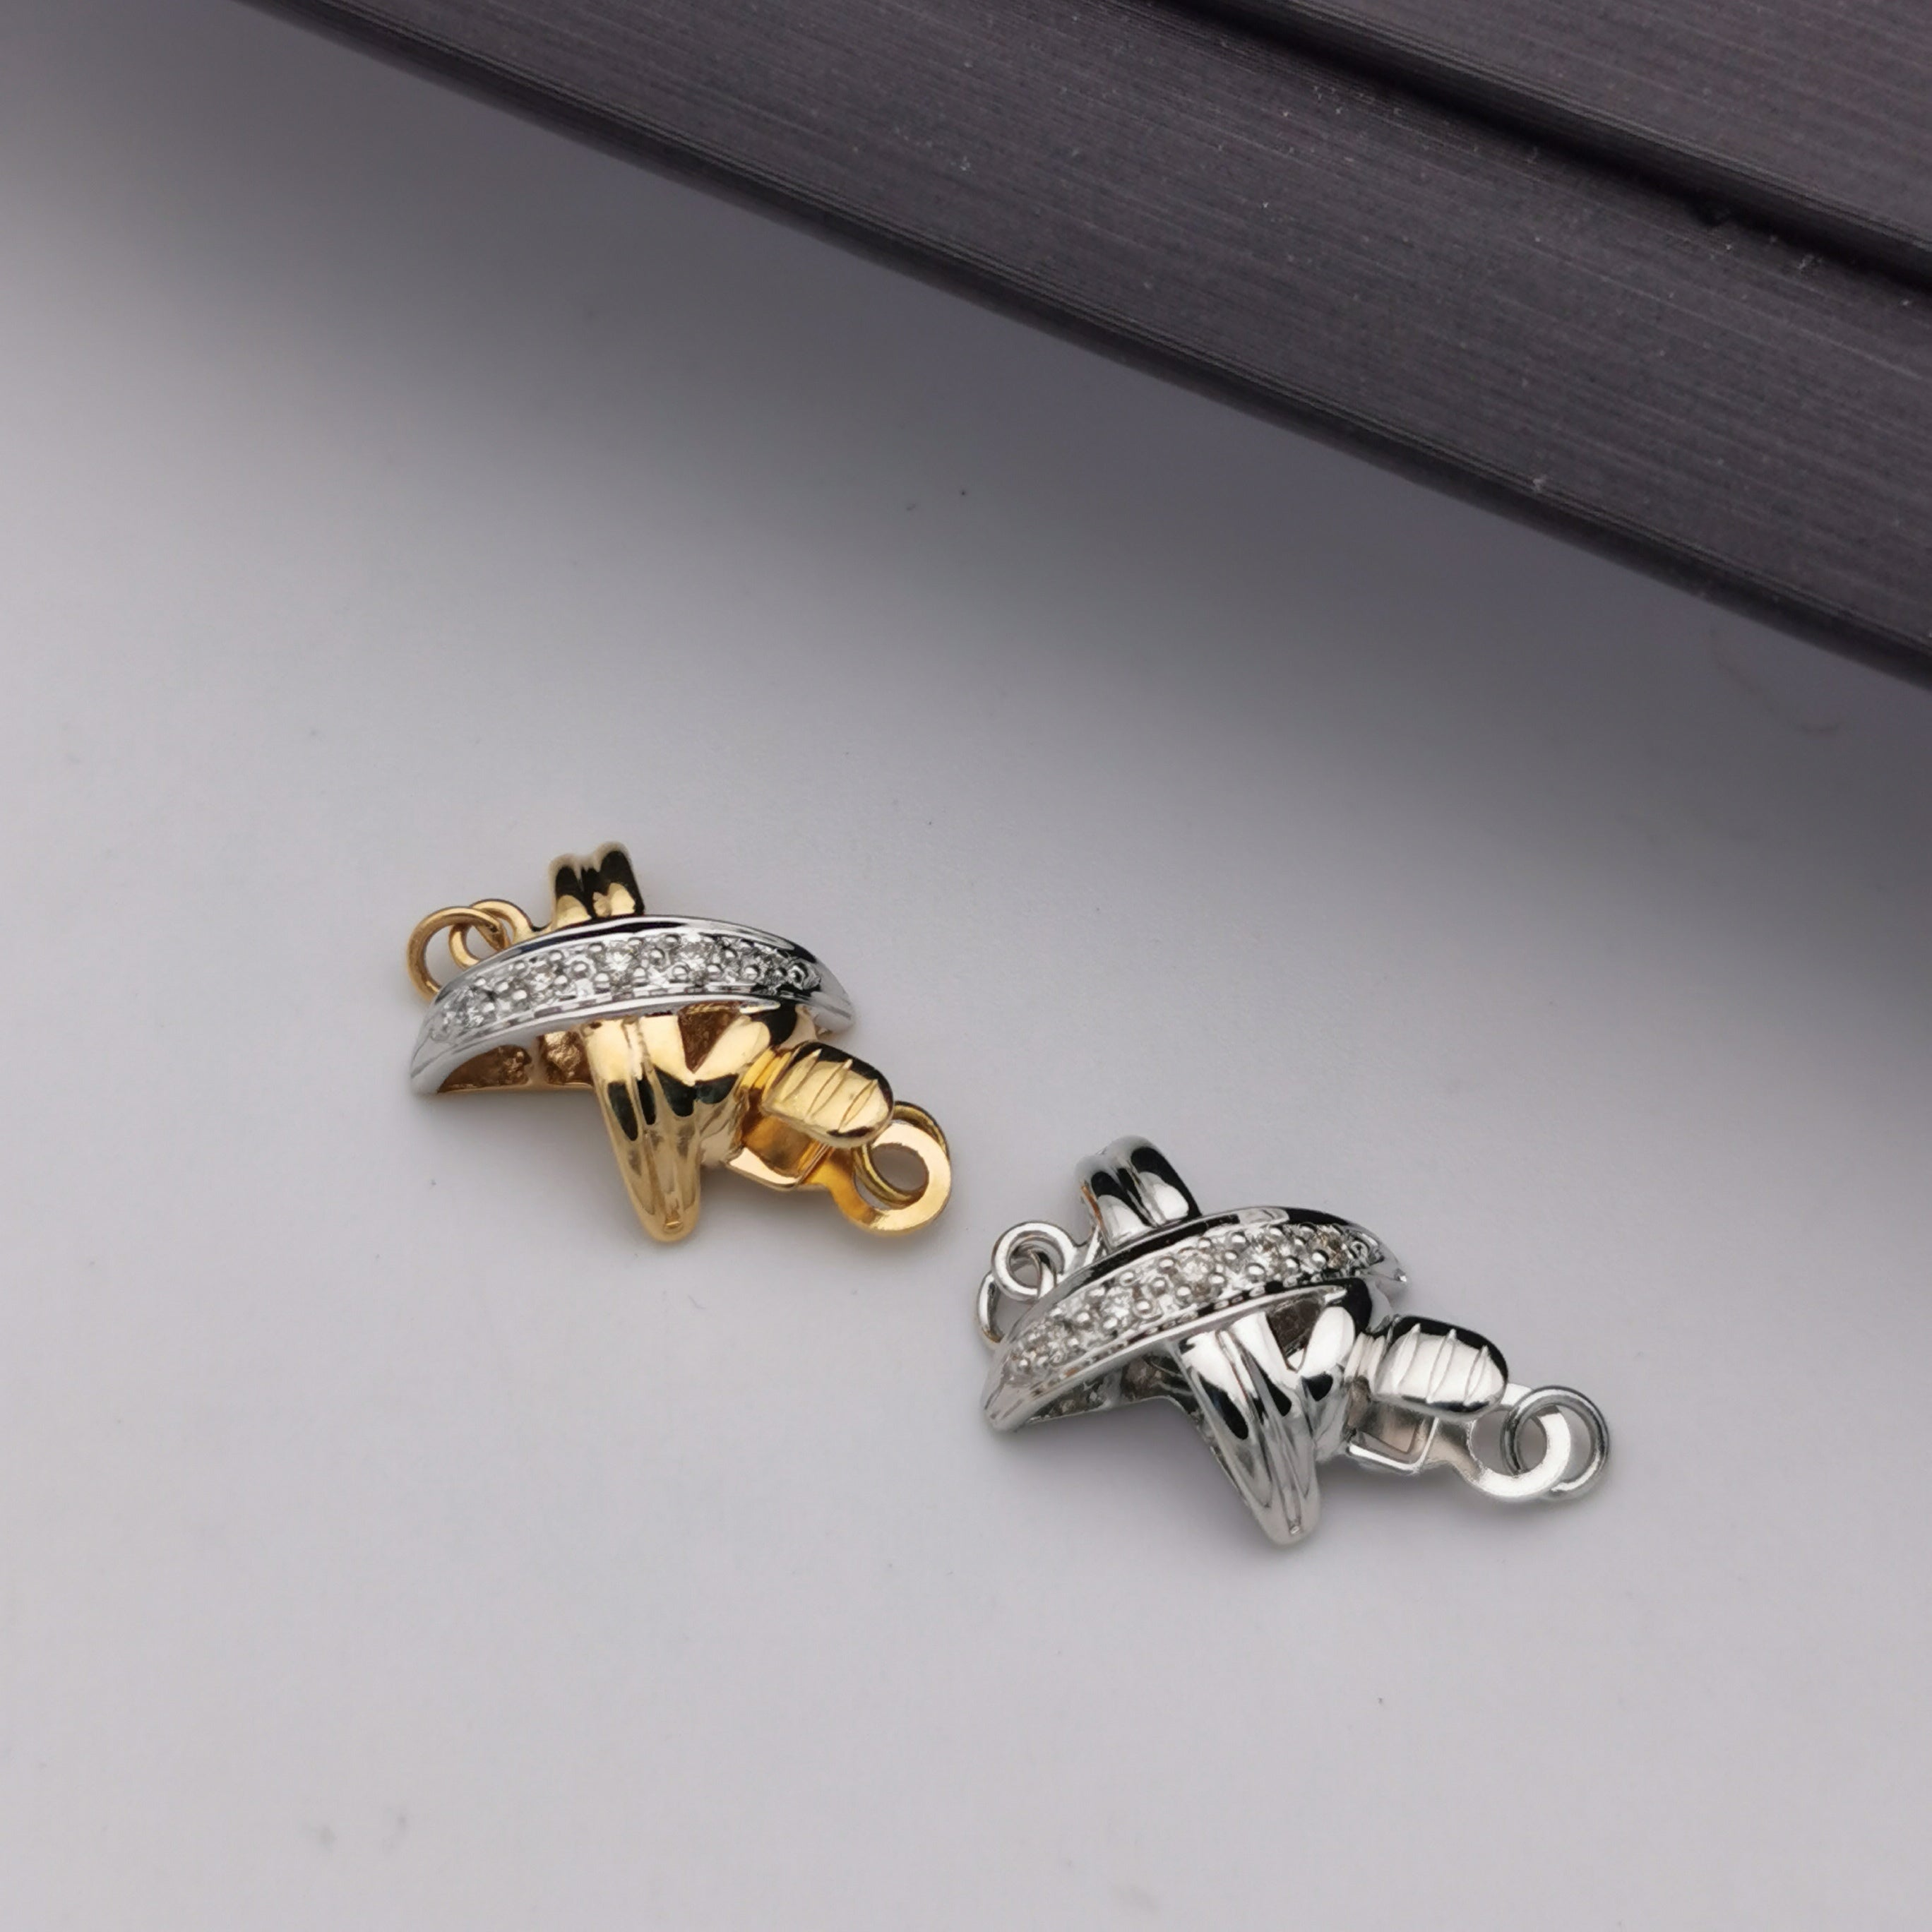 18K white gold/yellow gold with diamond clasp